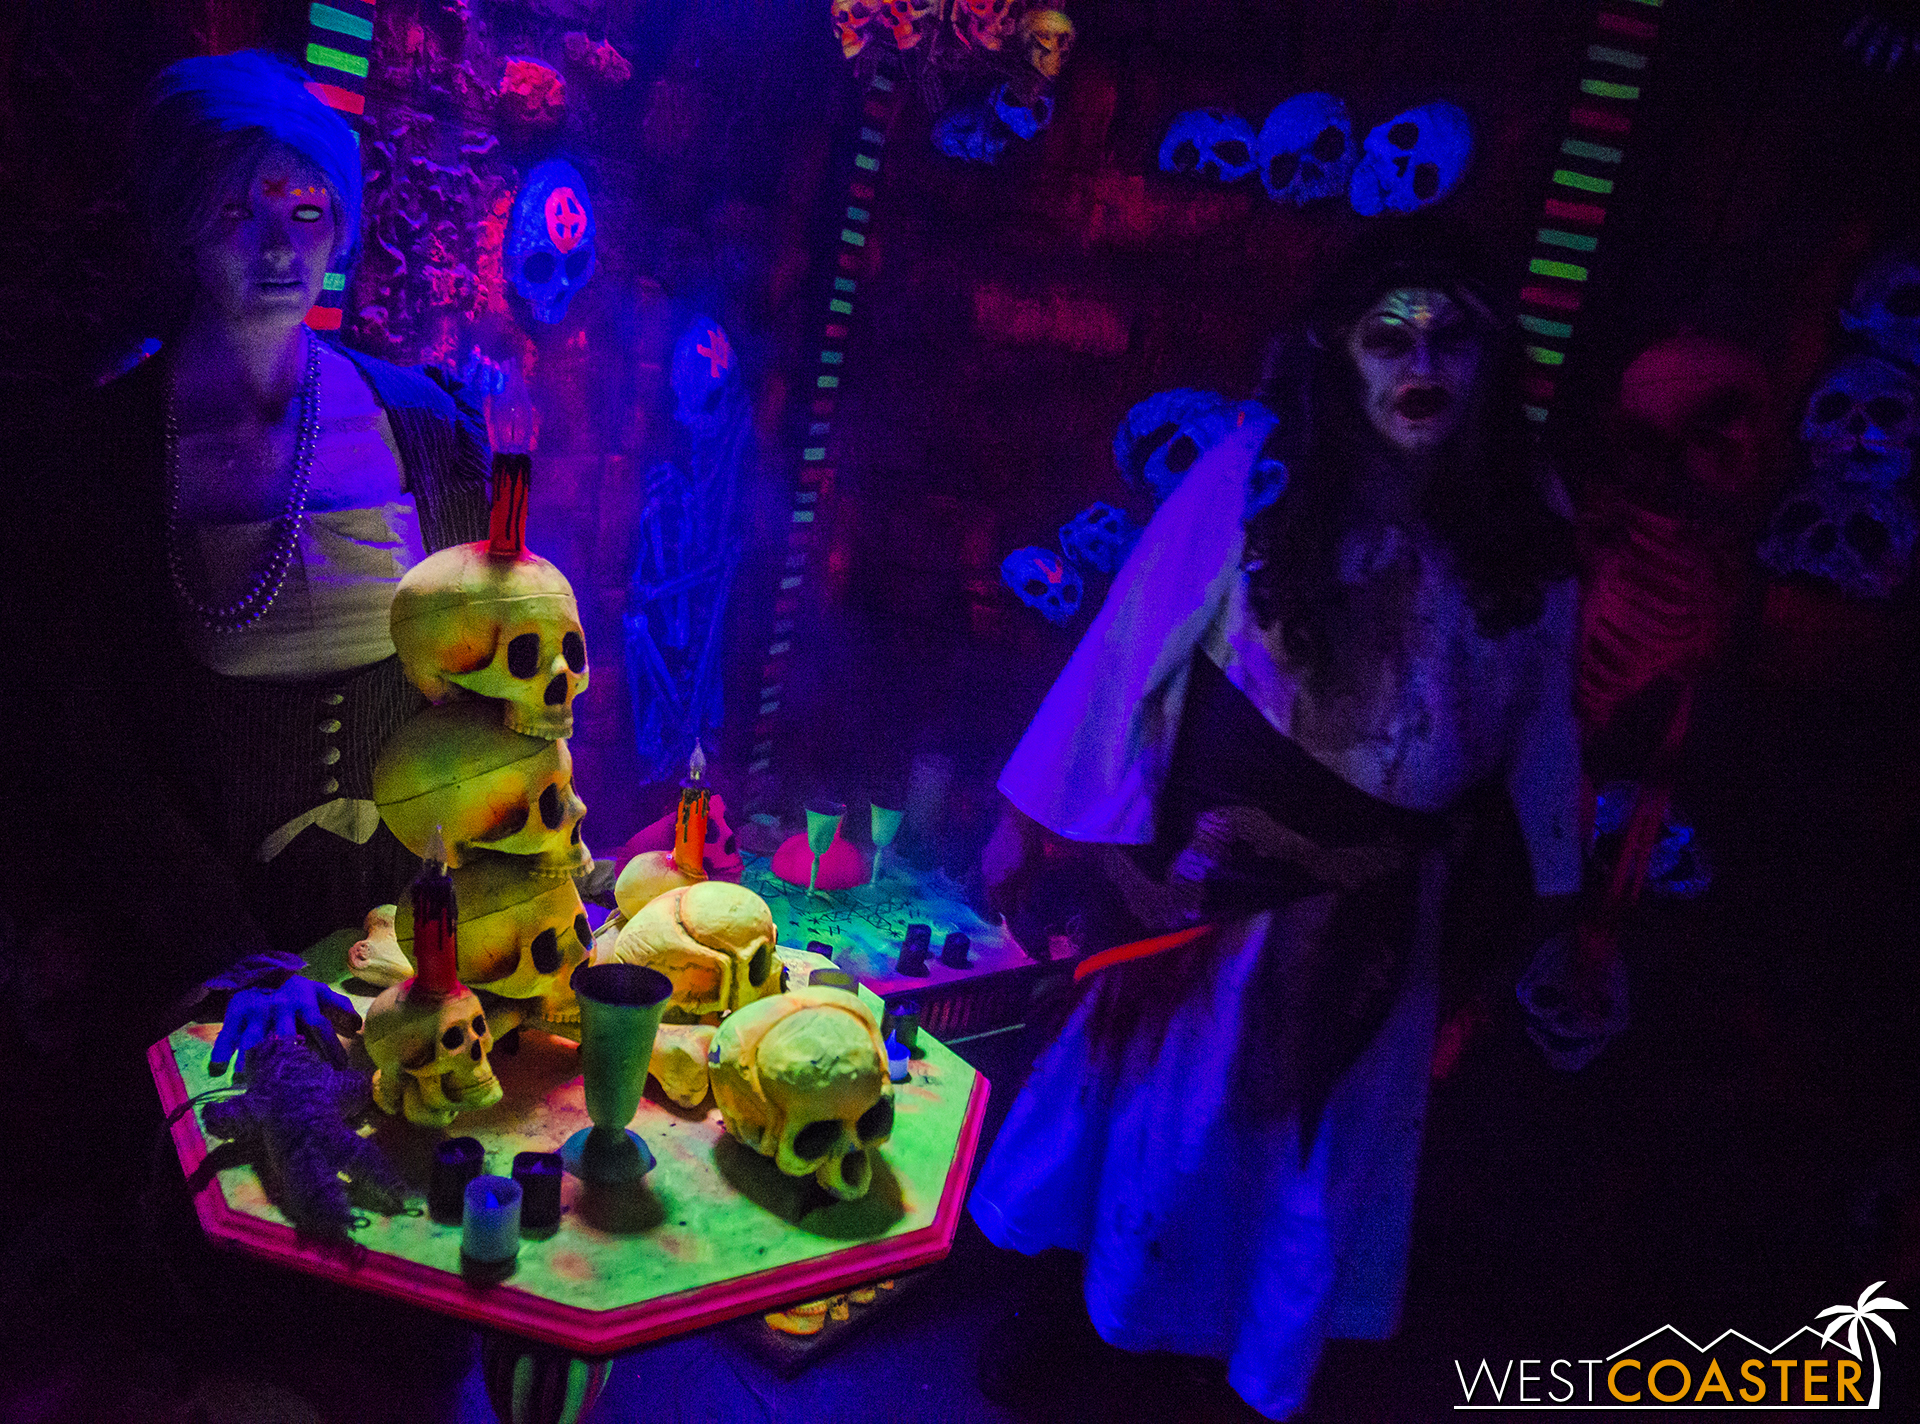 Guests entered into a room of colorful voodoo.